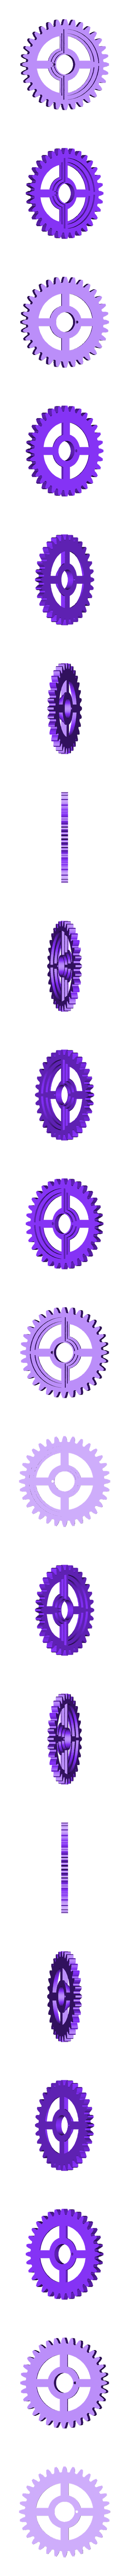 Large_Gear_FINAL.stl Download free STL file Gear Driven Adjustable TUSH • 3D printing model, christinewhybrow